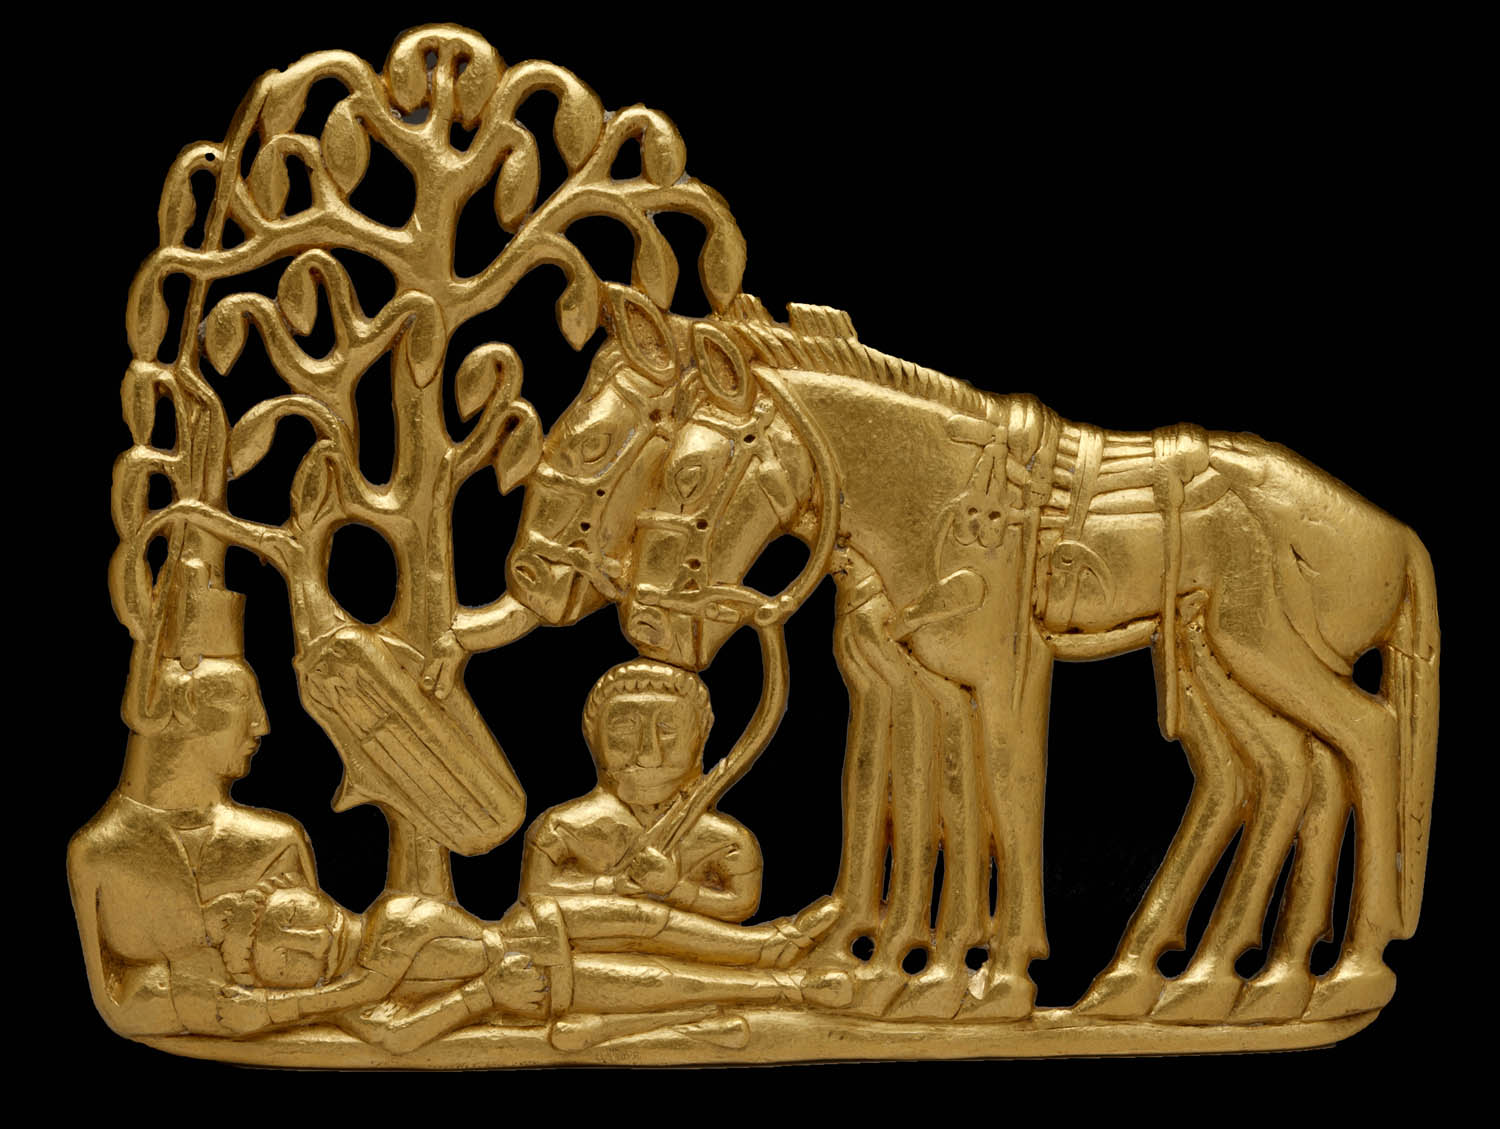 In this gold belt plaque, we see Scythians with horses under a tree. Shiny!